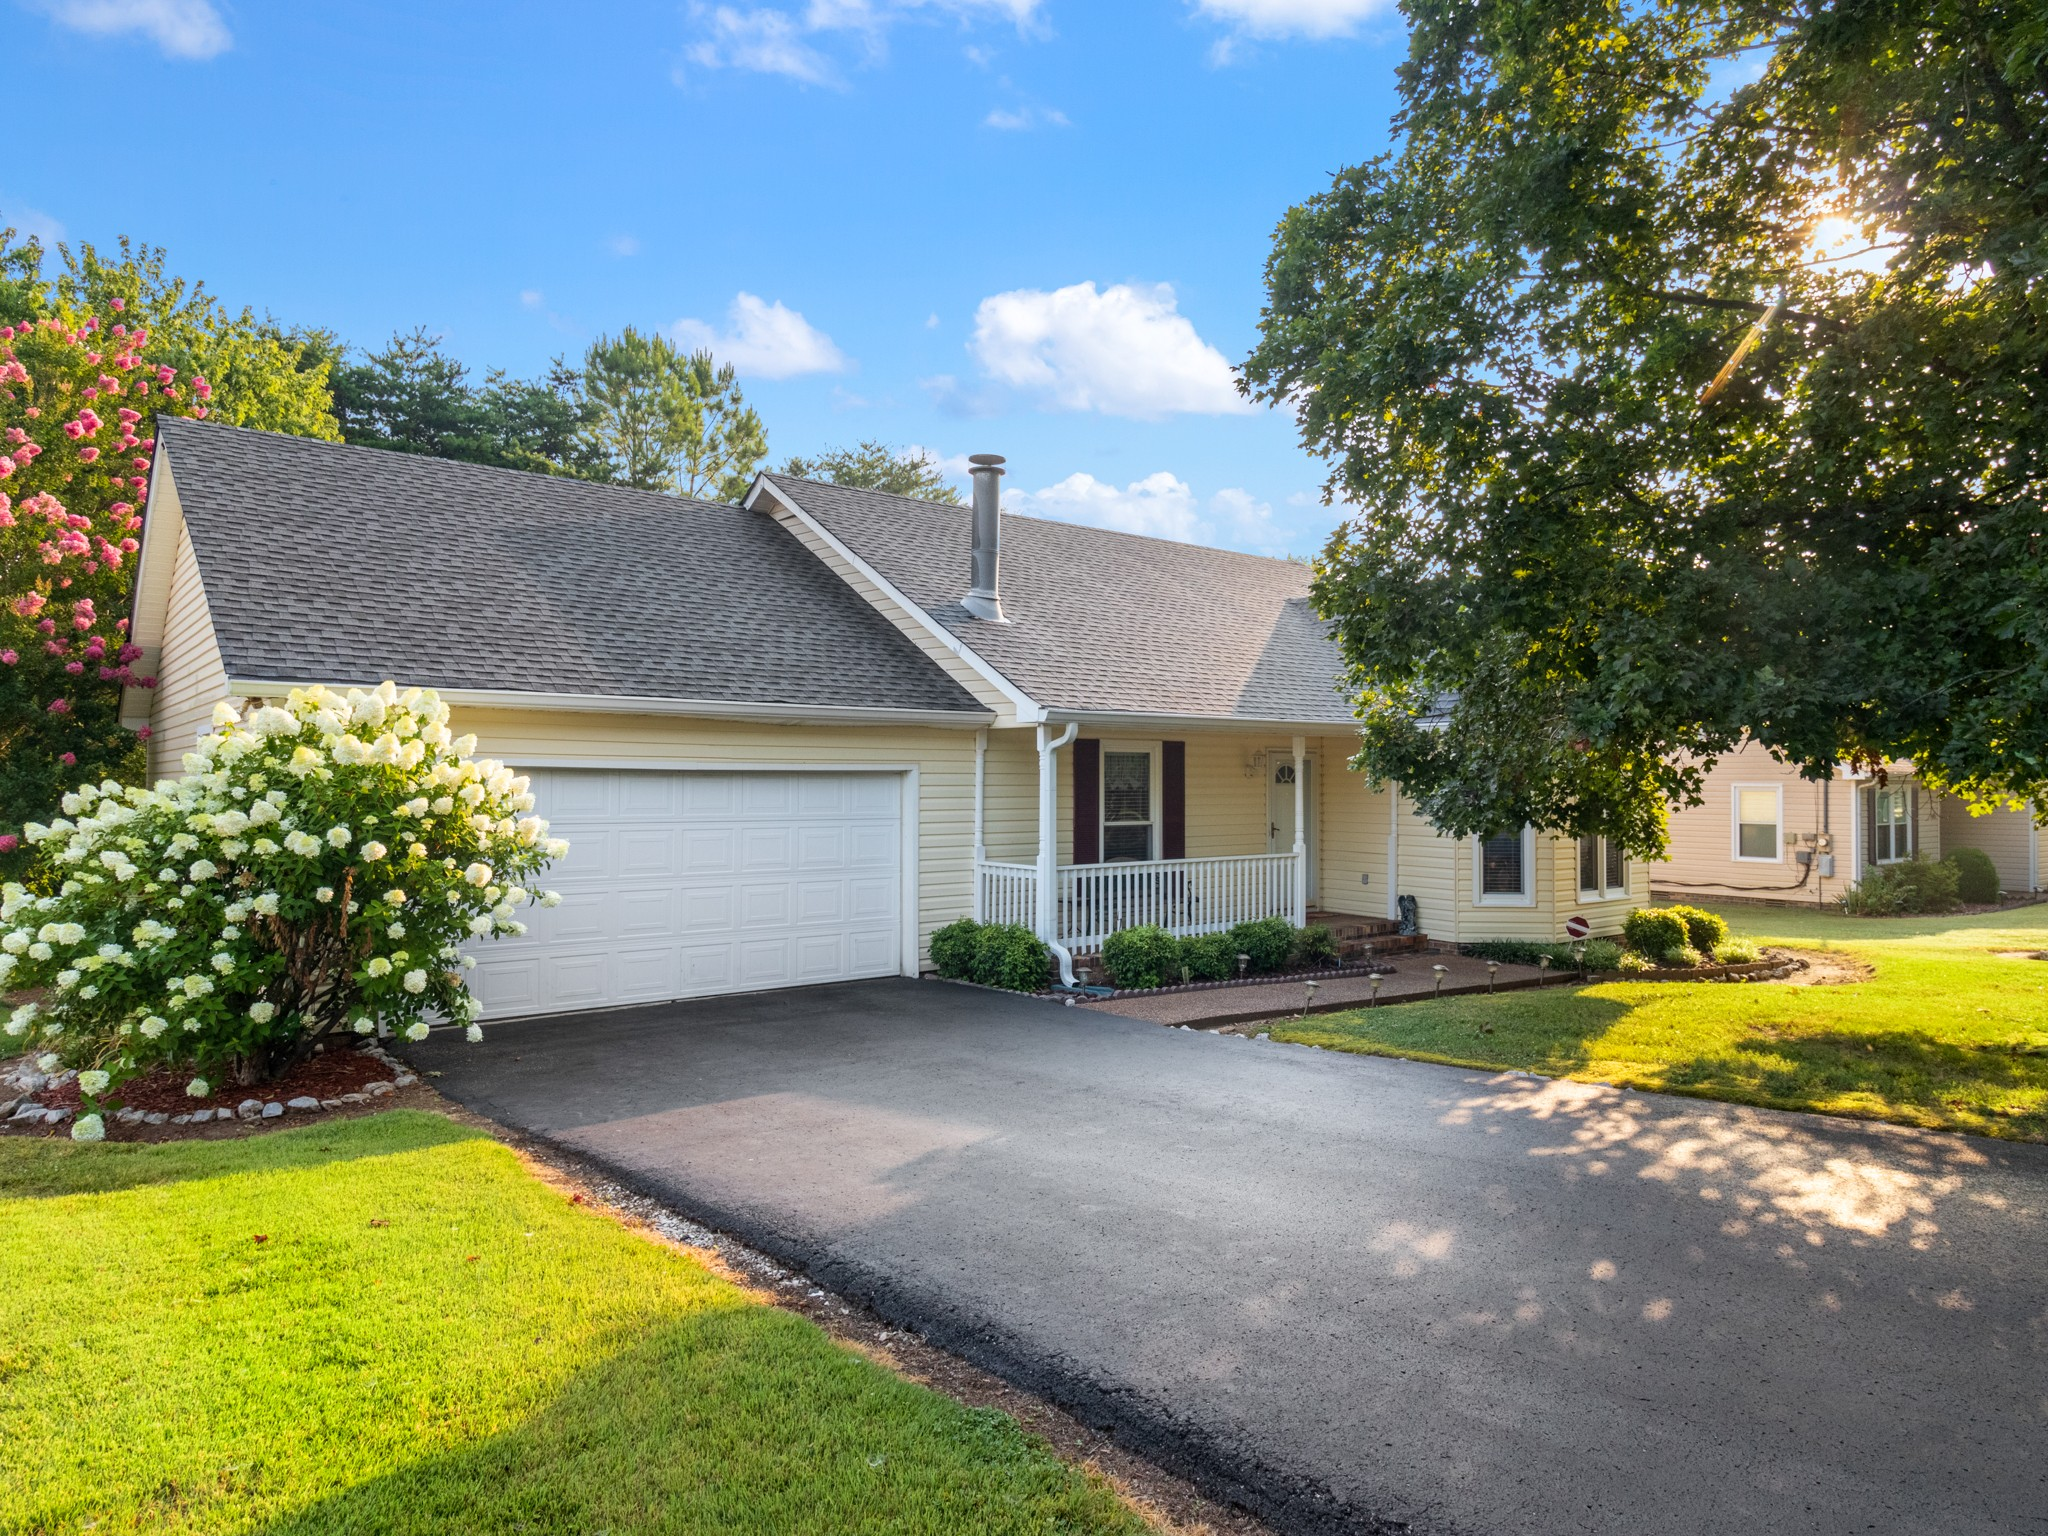 Mature landscaping, well maintained property, with pleasant decor inside, 11x11 composite deck, extra storage space in garage.